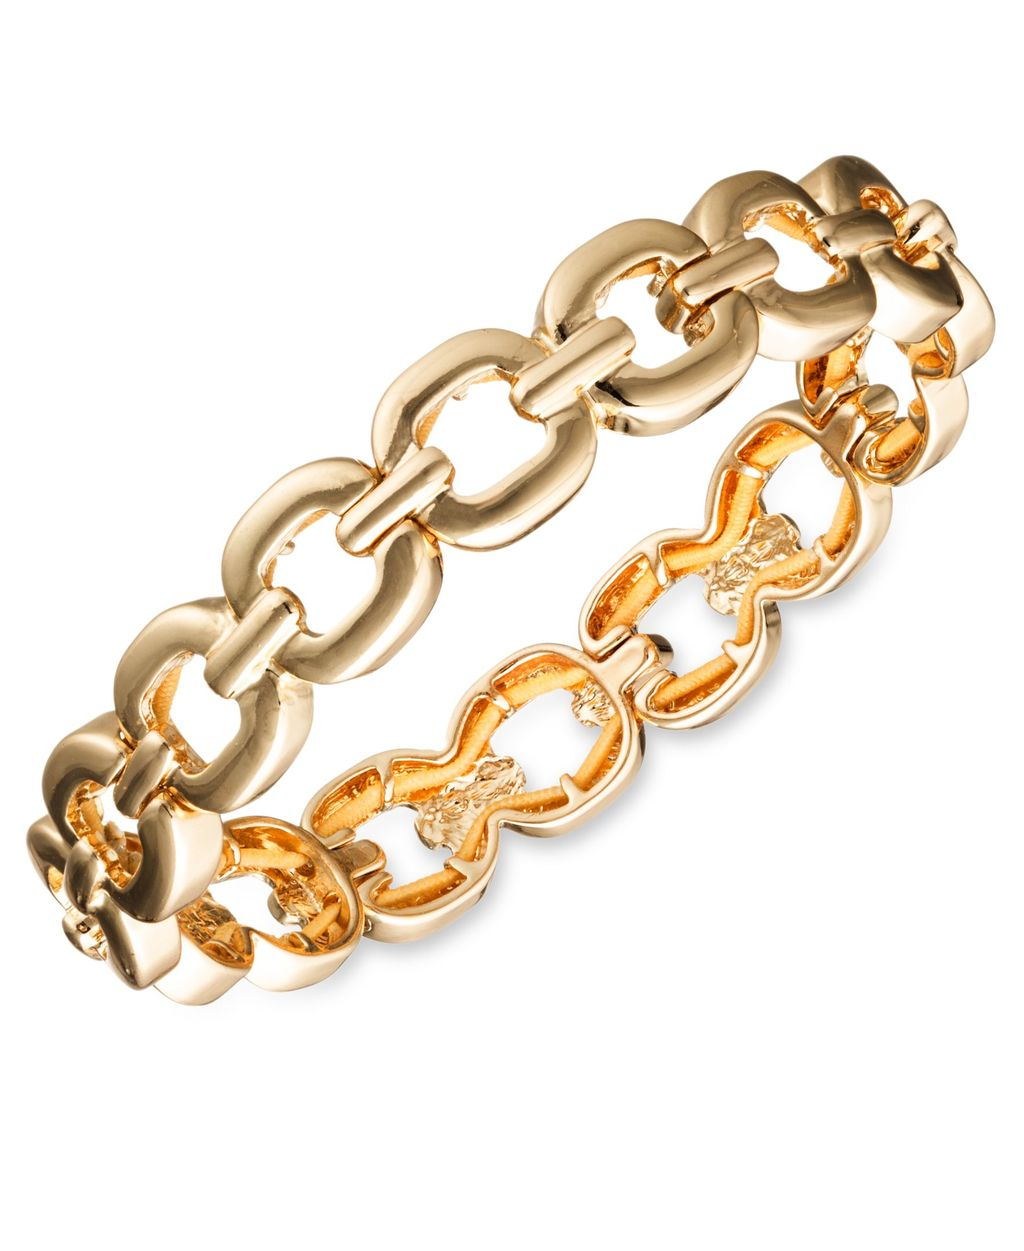 Glitzy Links Crystal Stretch Bracelet, Metallic - predominant colour: gold; occasions: evening; style: bangle/standard; size: standard; material: chain/metal; finish: metallic; season: a/w 2015; wardrobe: event